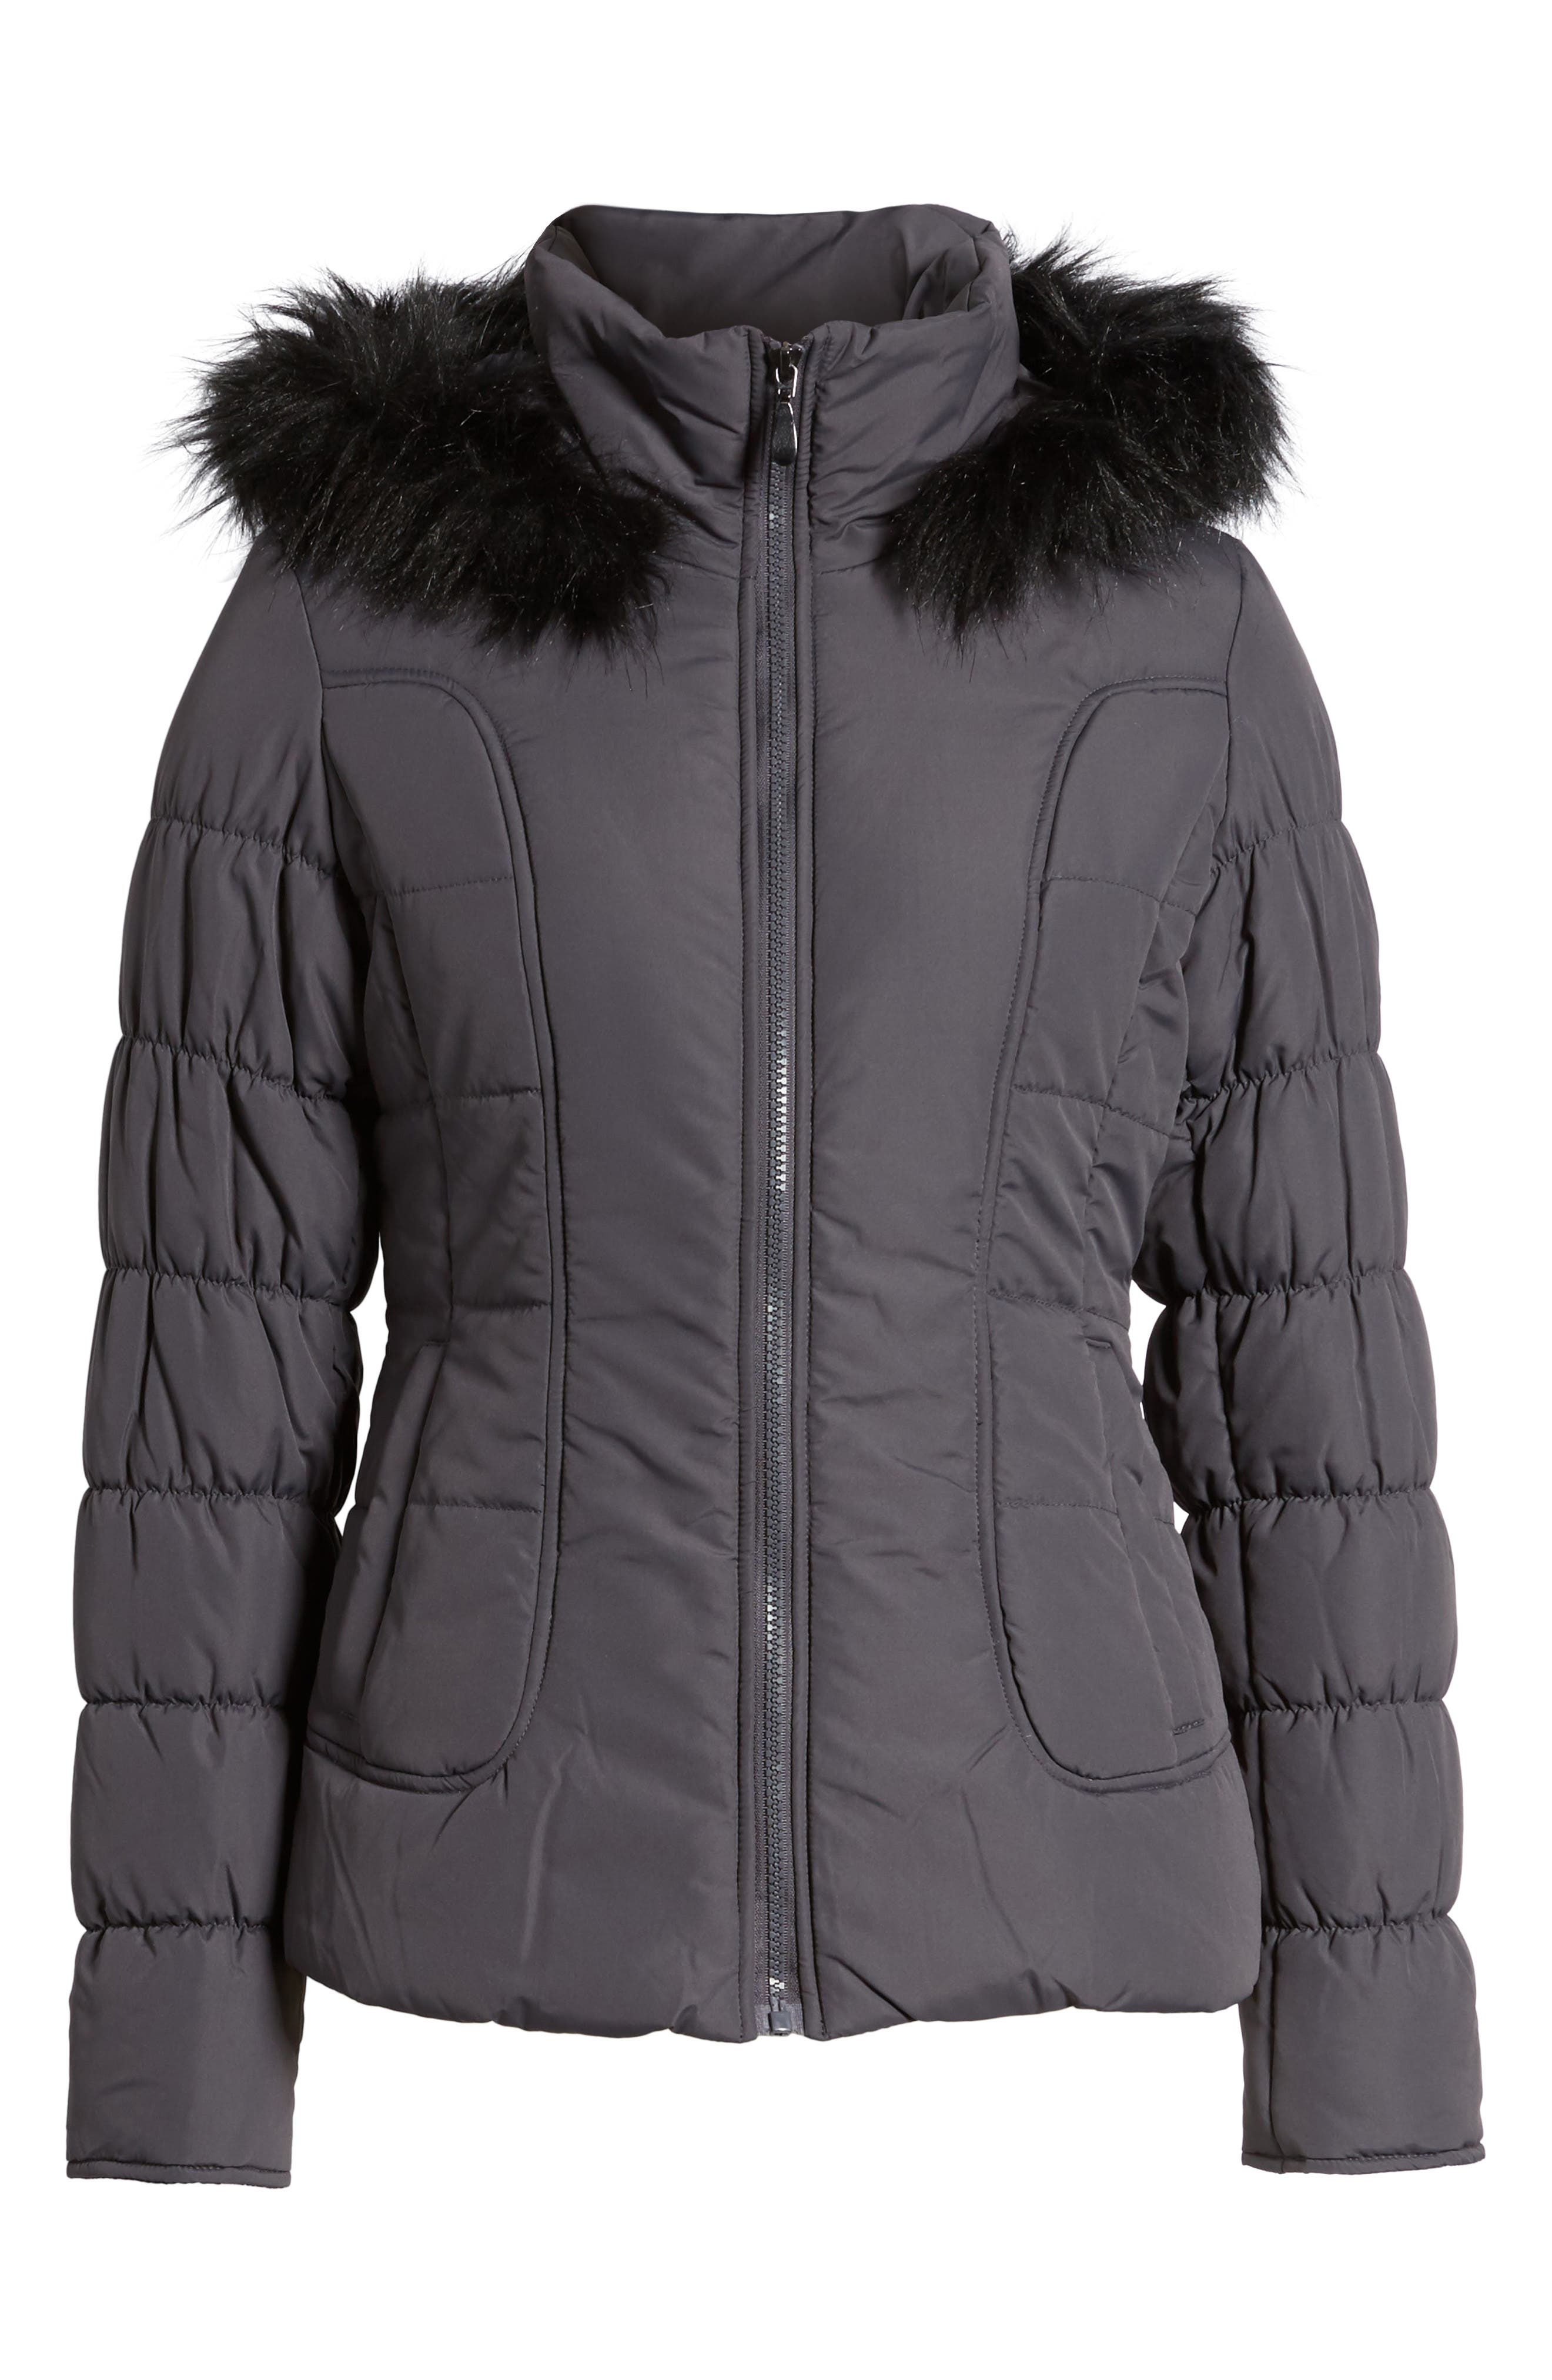 Quilted Jacket with Faux Fur Collar,                             Alternate thumbnail 5, color,                             036